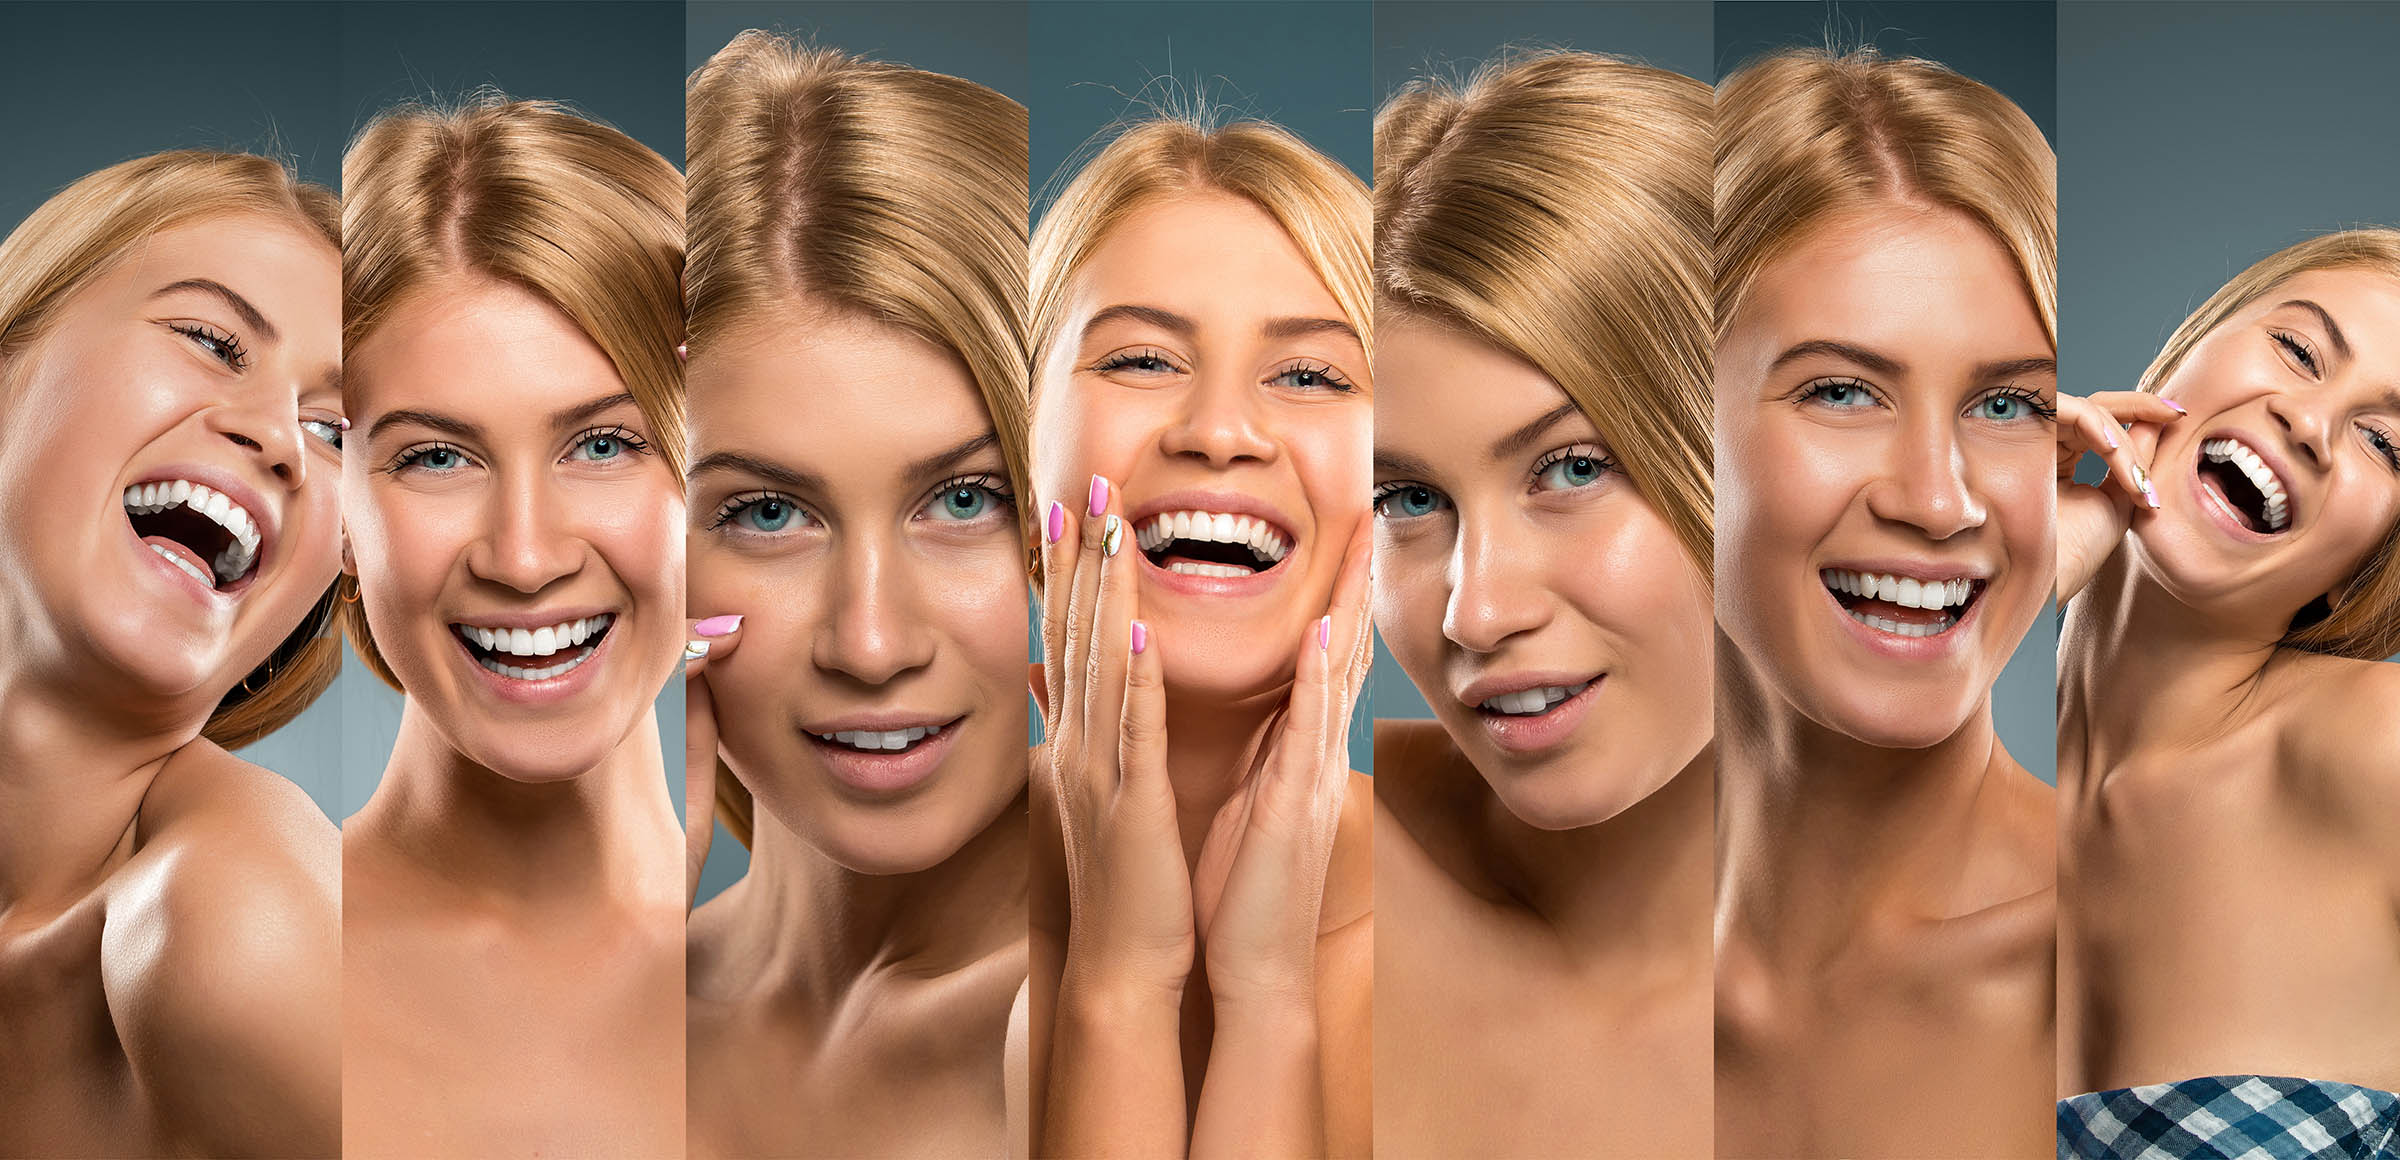 Collage of smiling girl portraits, Young woman smiling and having fun. Professional studio shot.